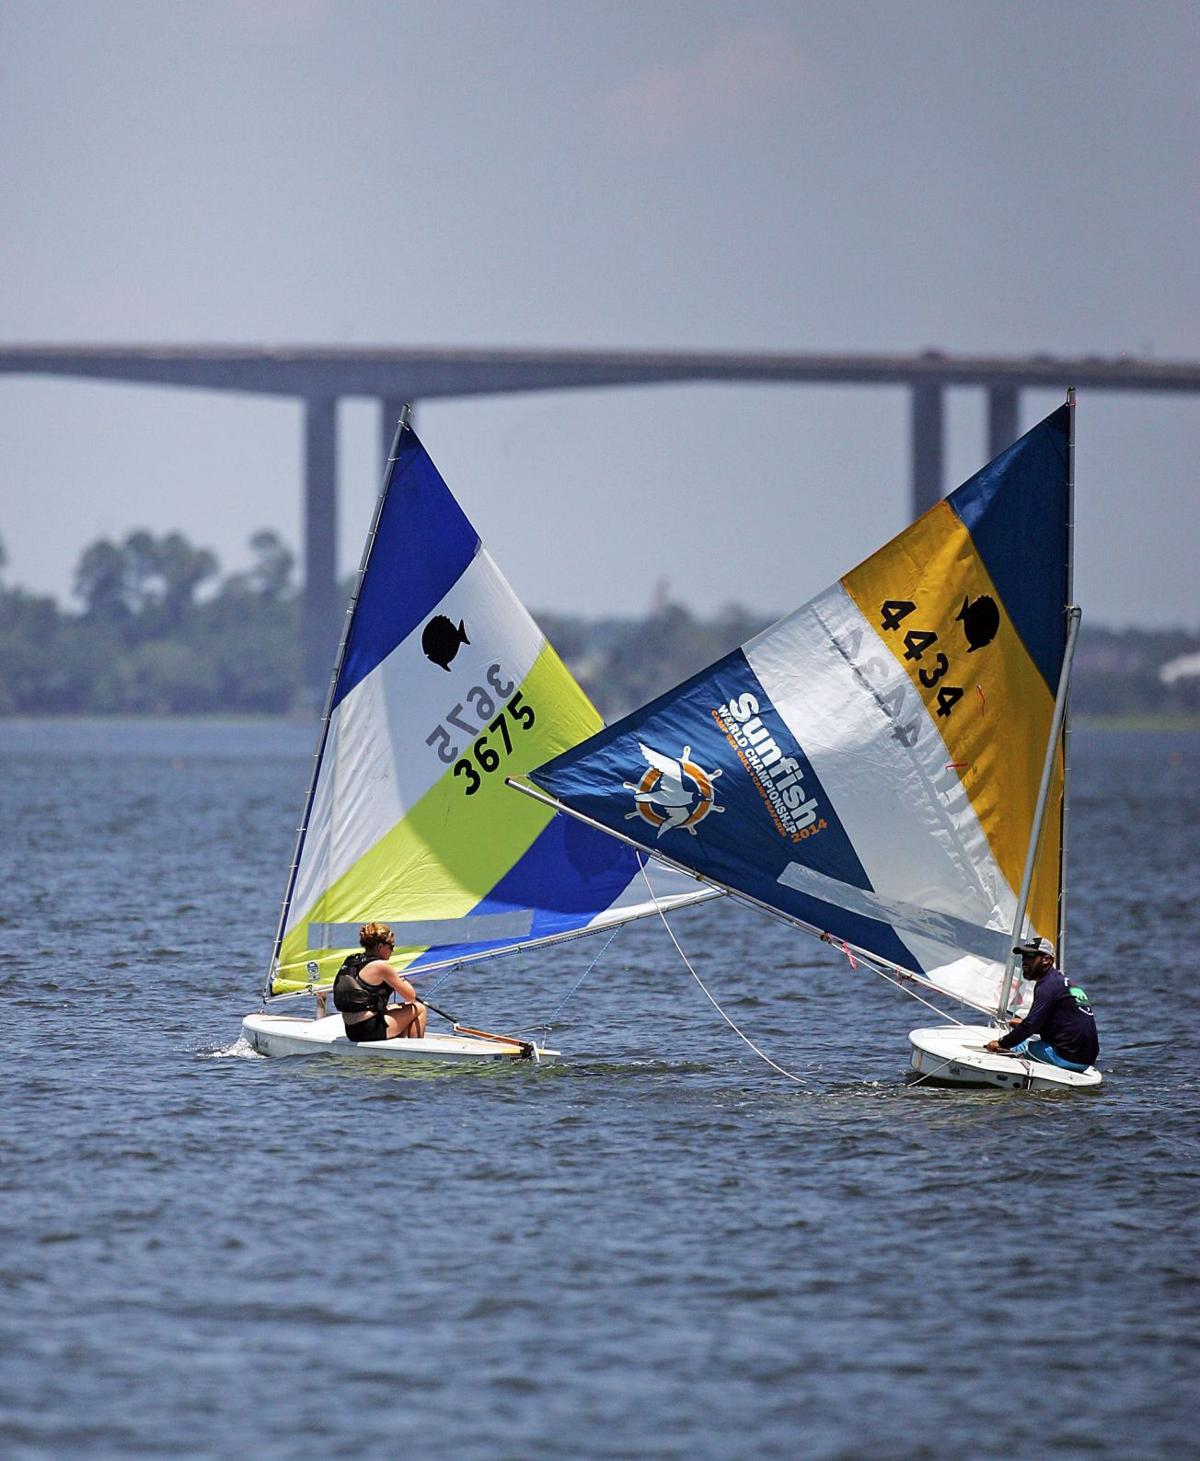 54th annual Hobcaw Yacht Club Regatta continues effort to get youth involved in sailing